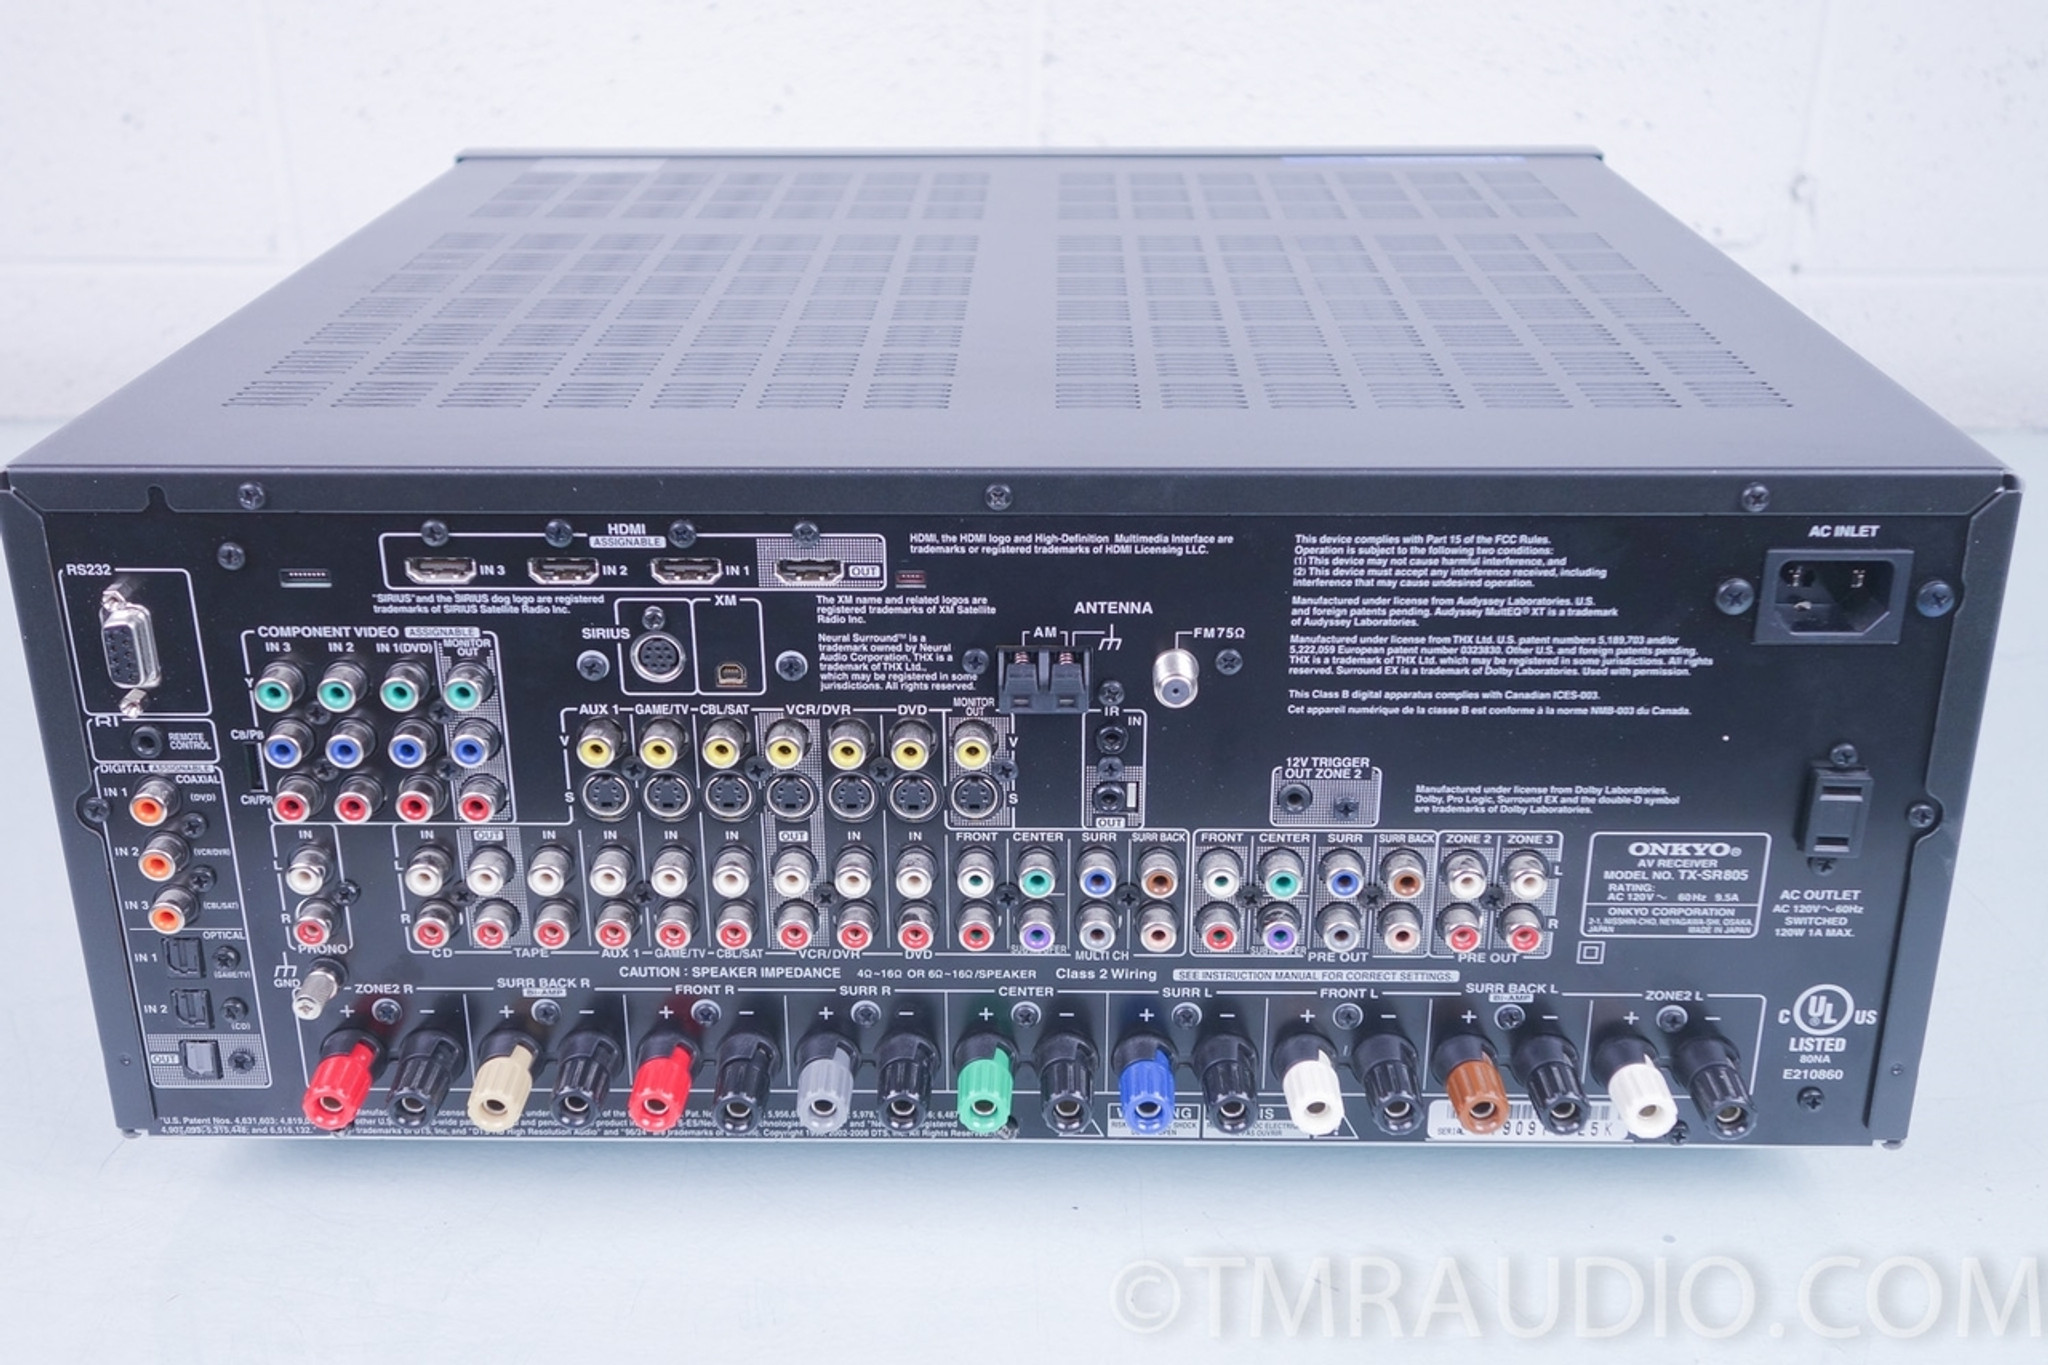 onkyo tx sr805 7 1 channel home theater receiver in factory box [ 1280 x 853 Pixel ]